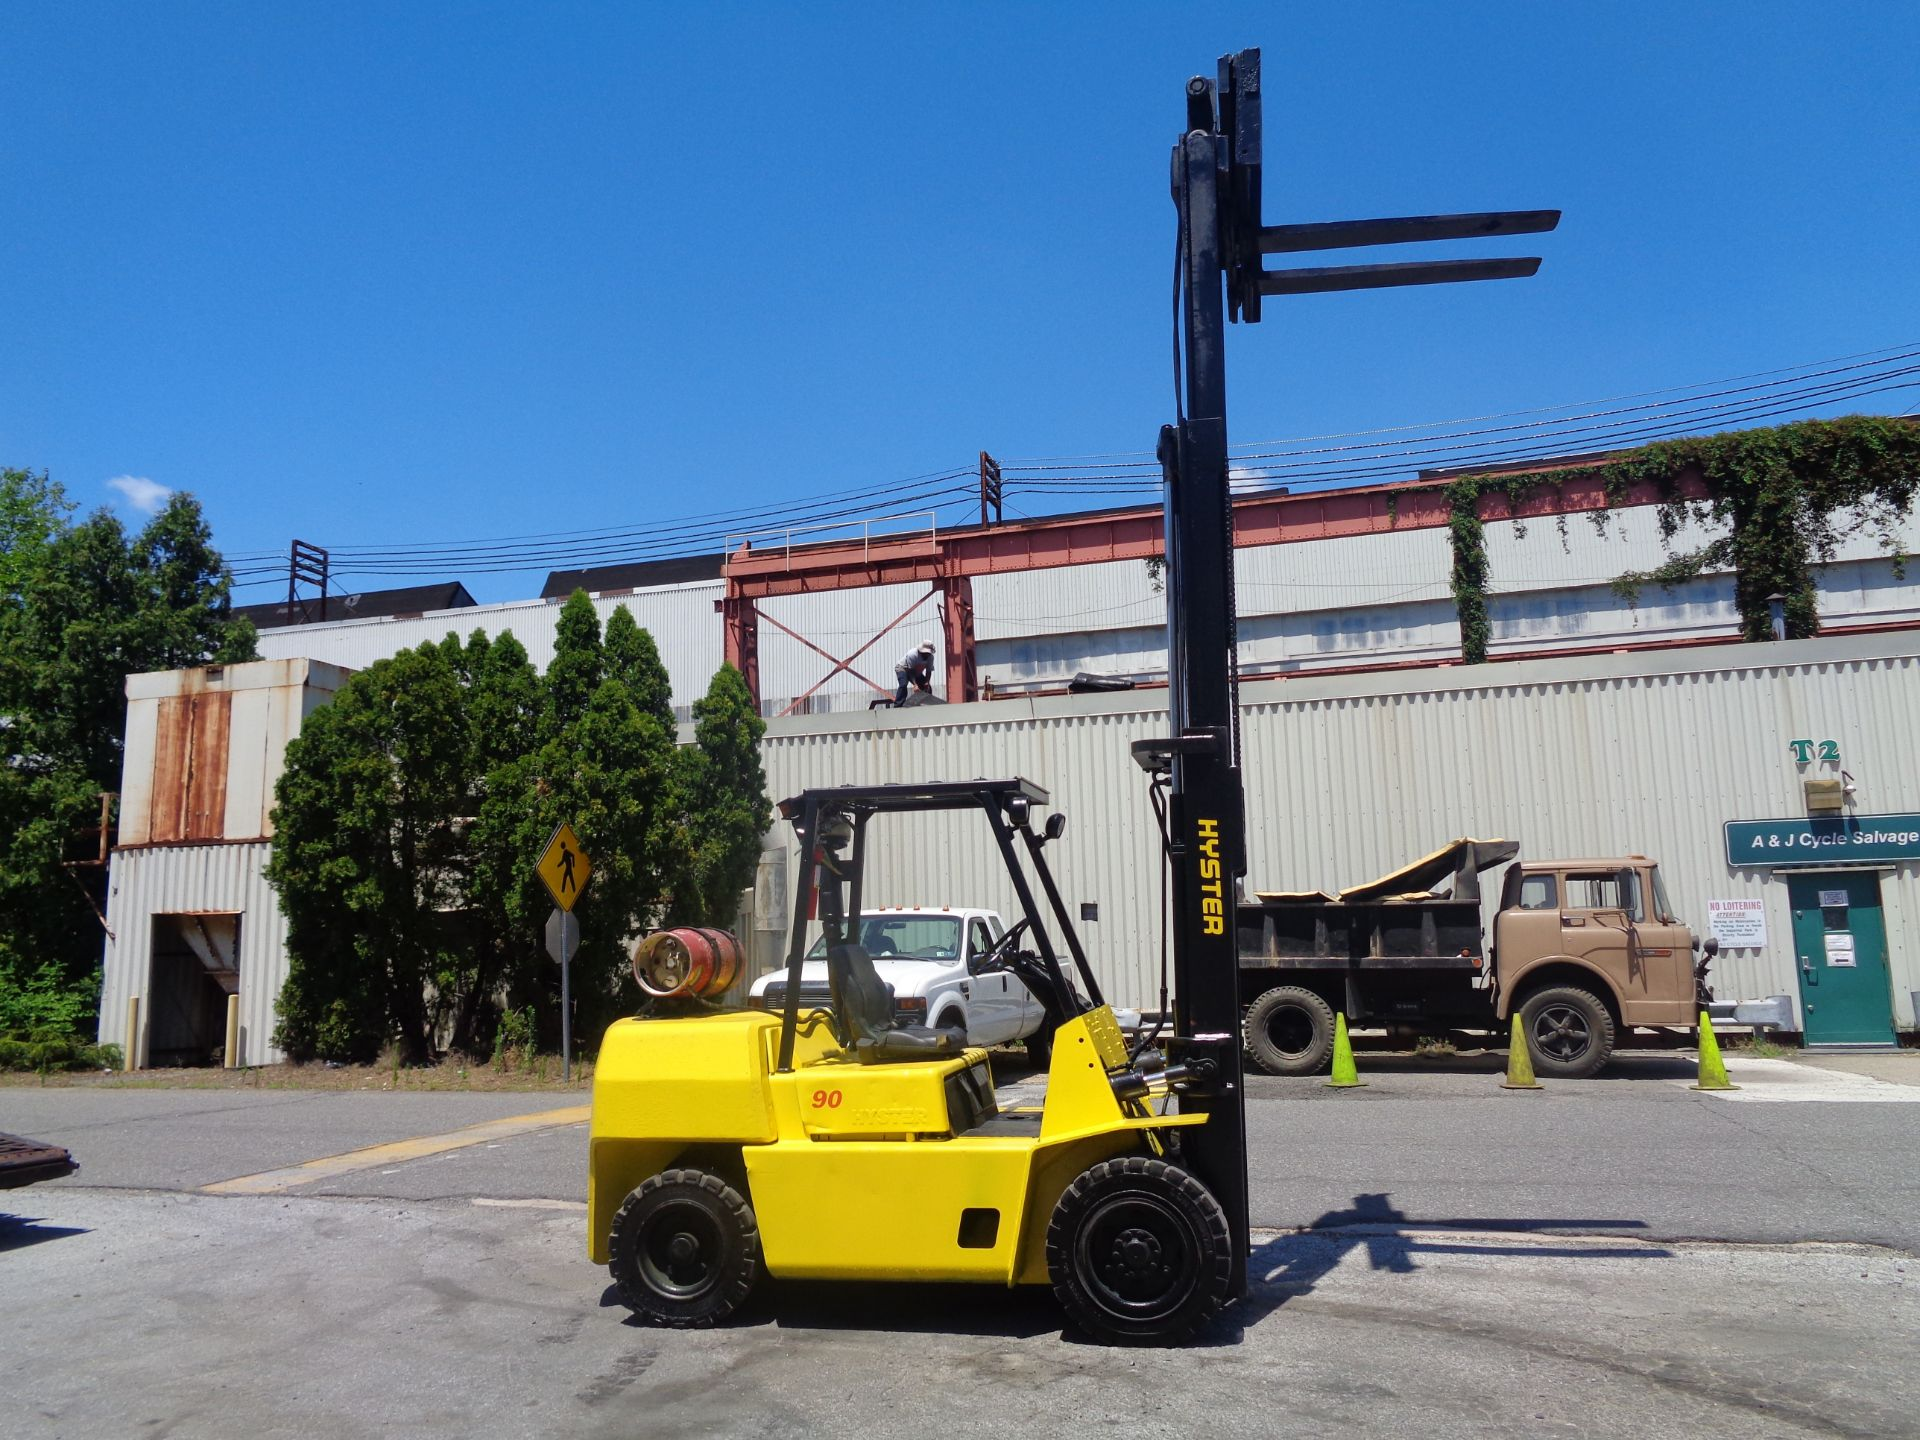 Hyster H90XLS Forklift 9,000 lbs - Image 11 of 13